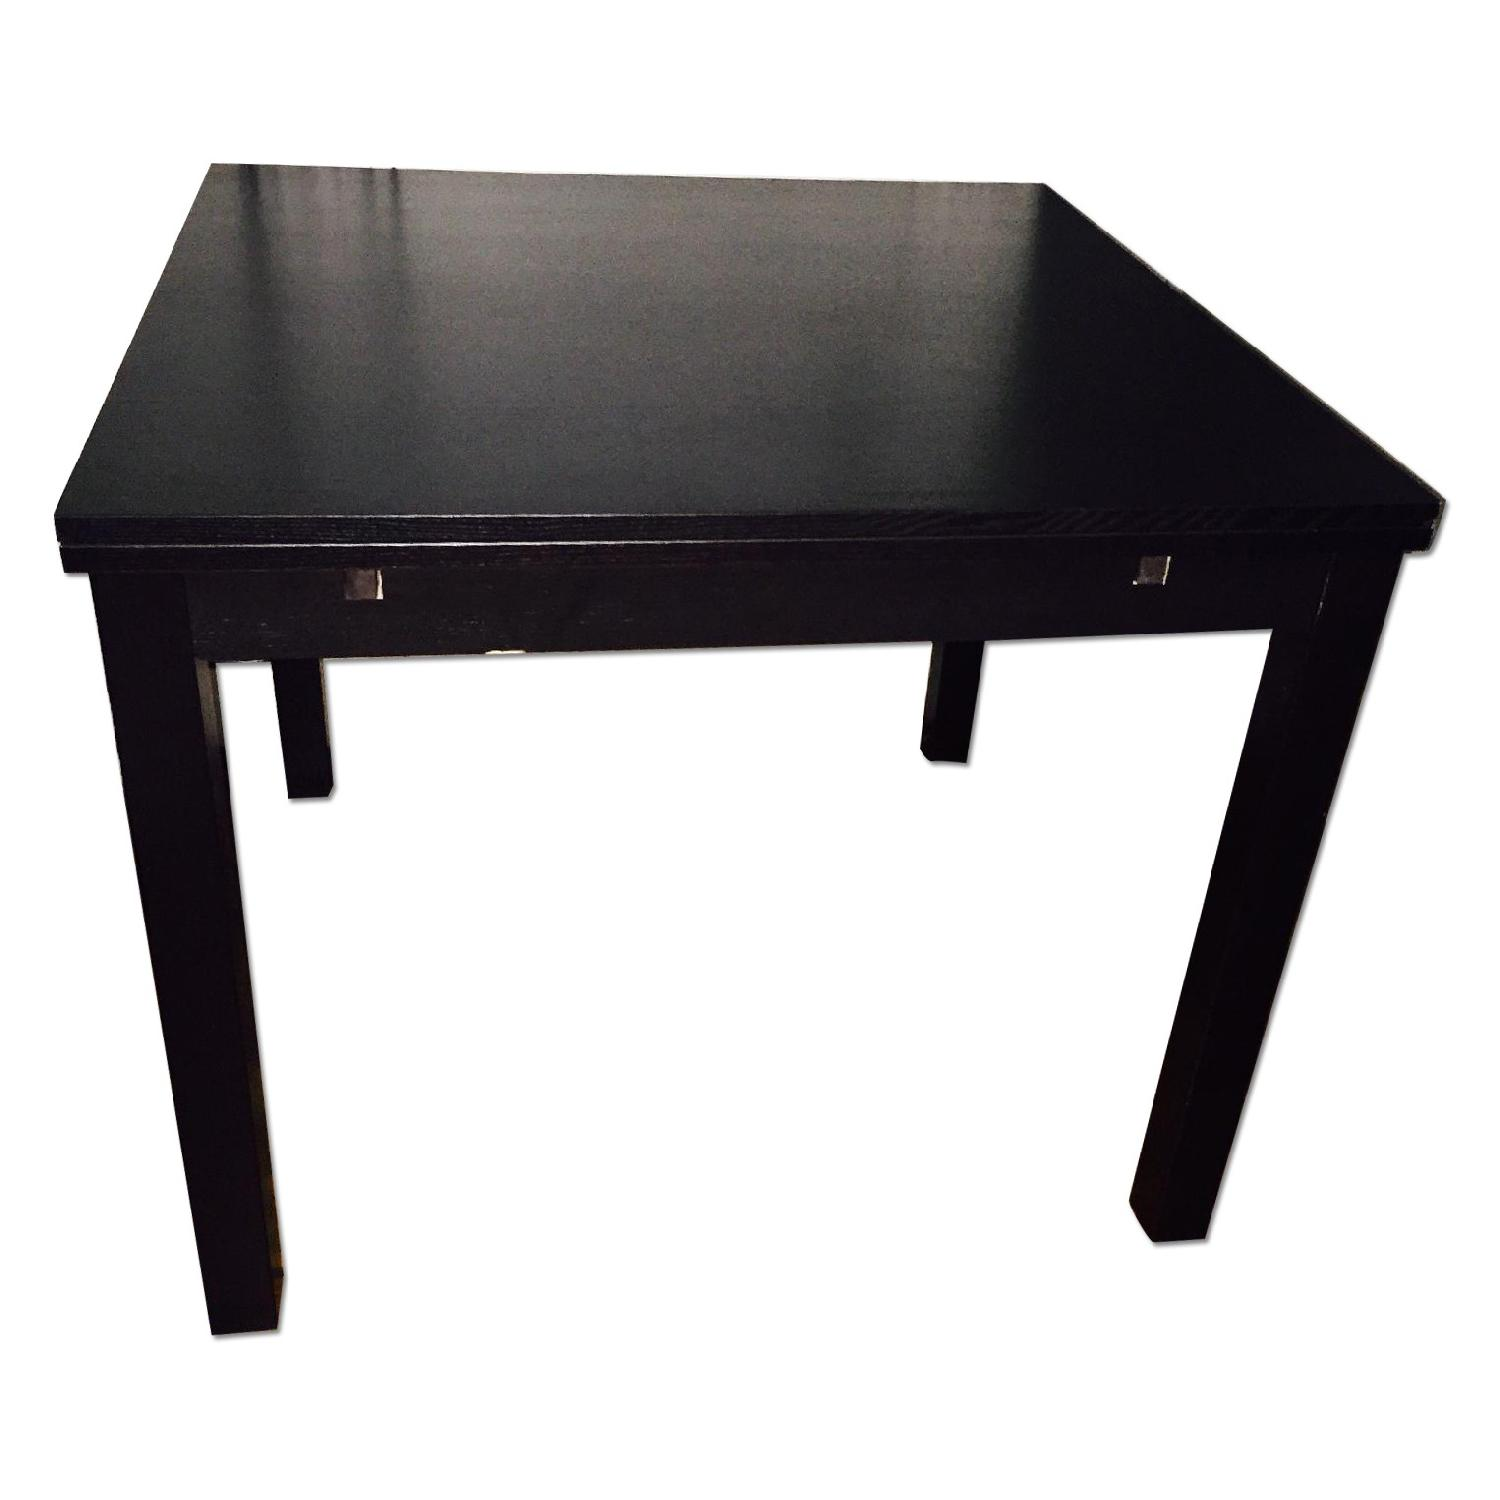 Used ikea bjursta brown expandable table for sale in nyc for Ikea table 9 99